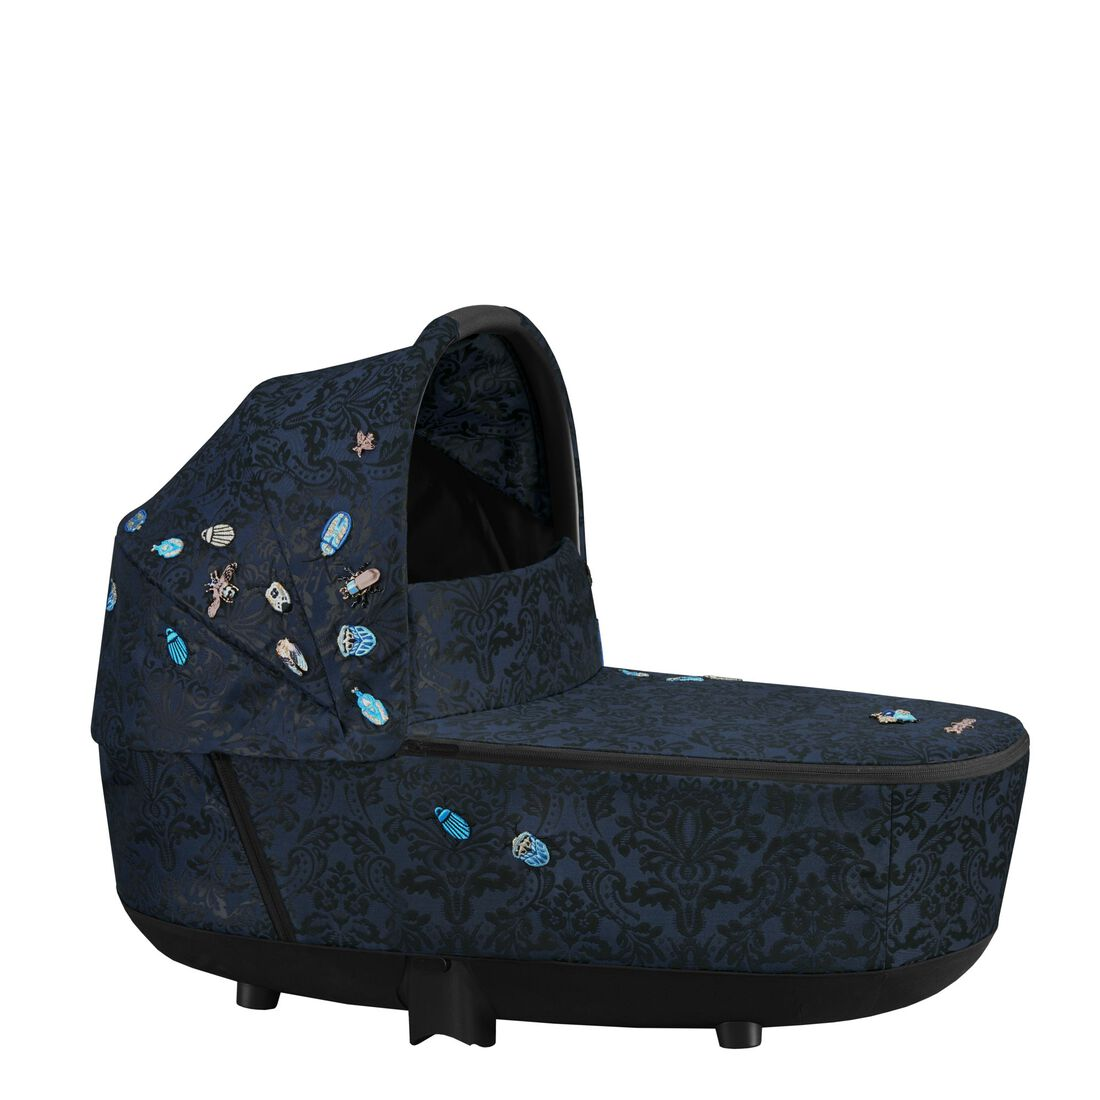 CYBEX Priam Lux Carry Cot - Jewels of Nature in Jewels of Nature large Bild 1